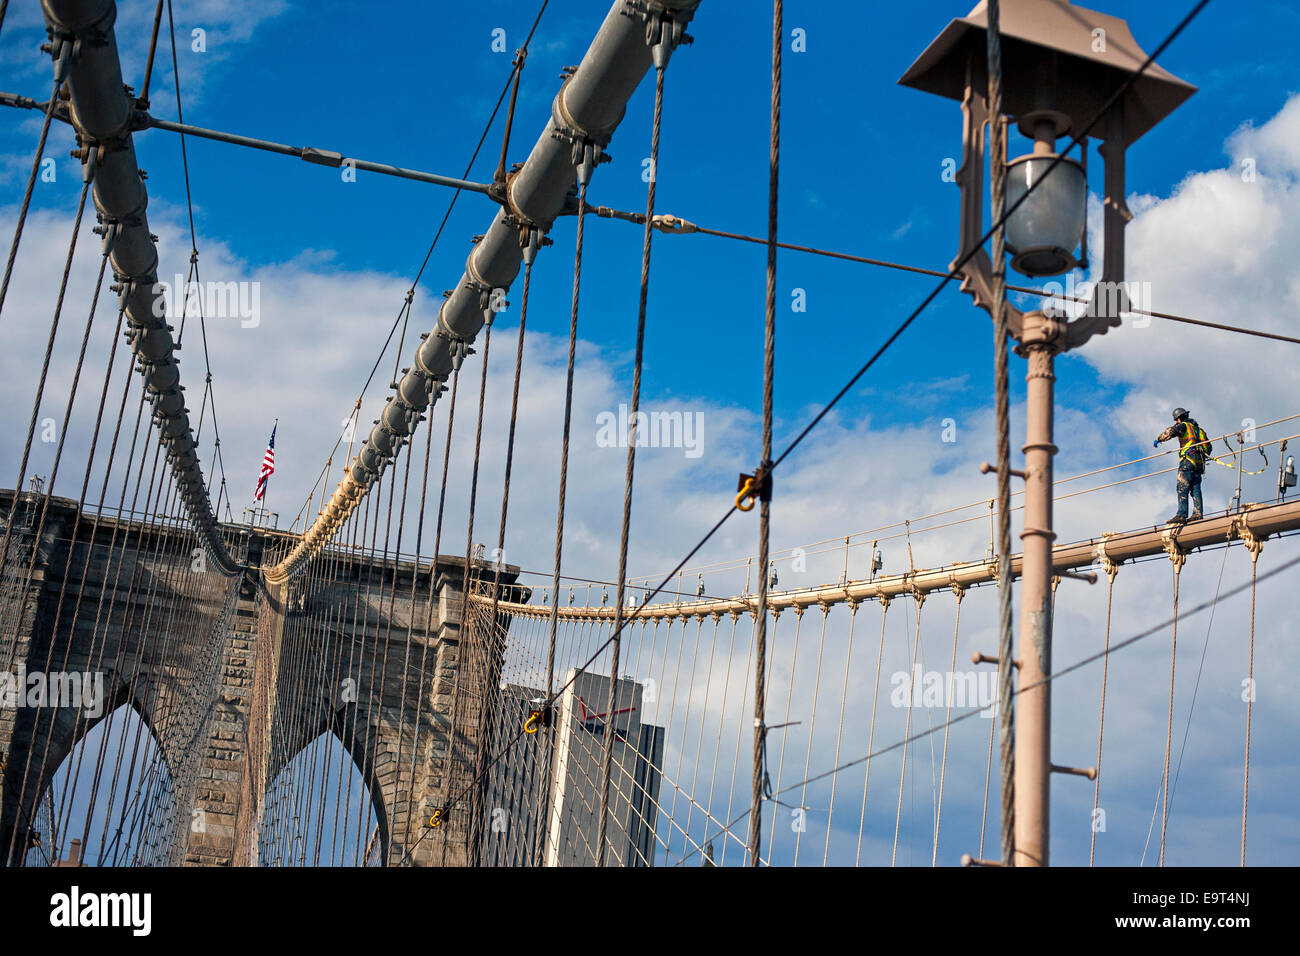 Construction worker on the Brooklyn Bridge - Stock Image